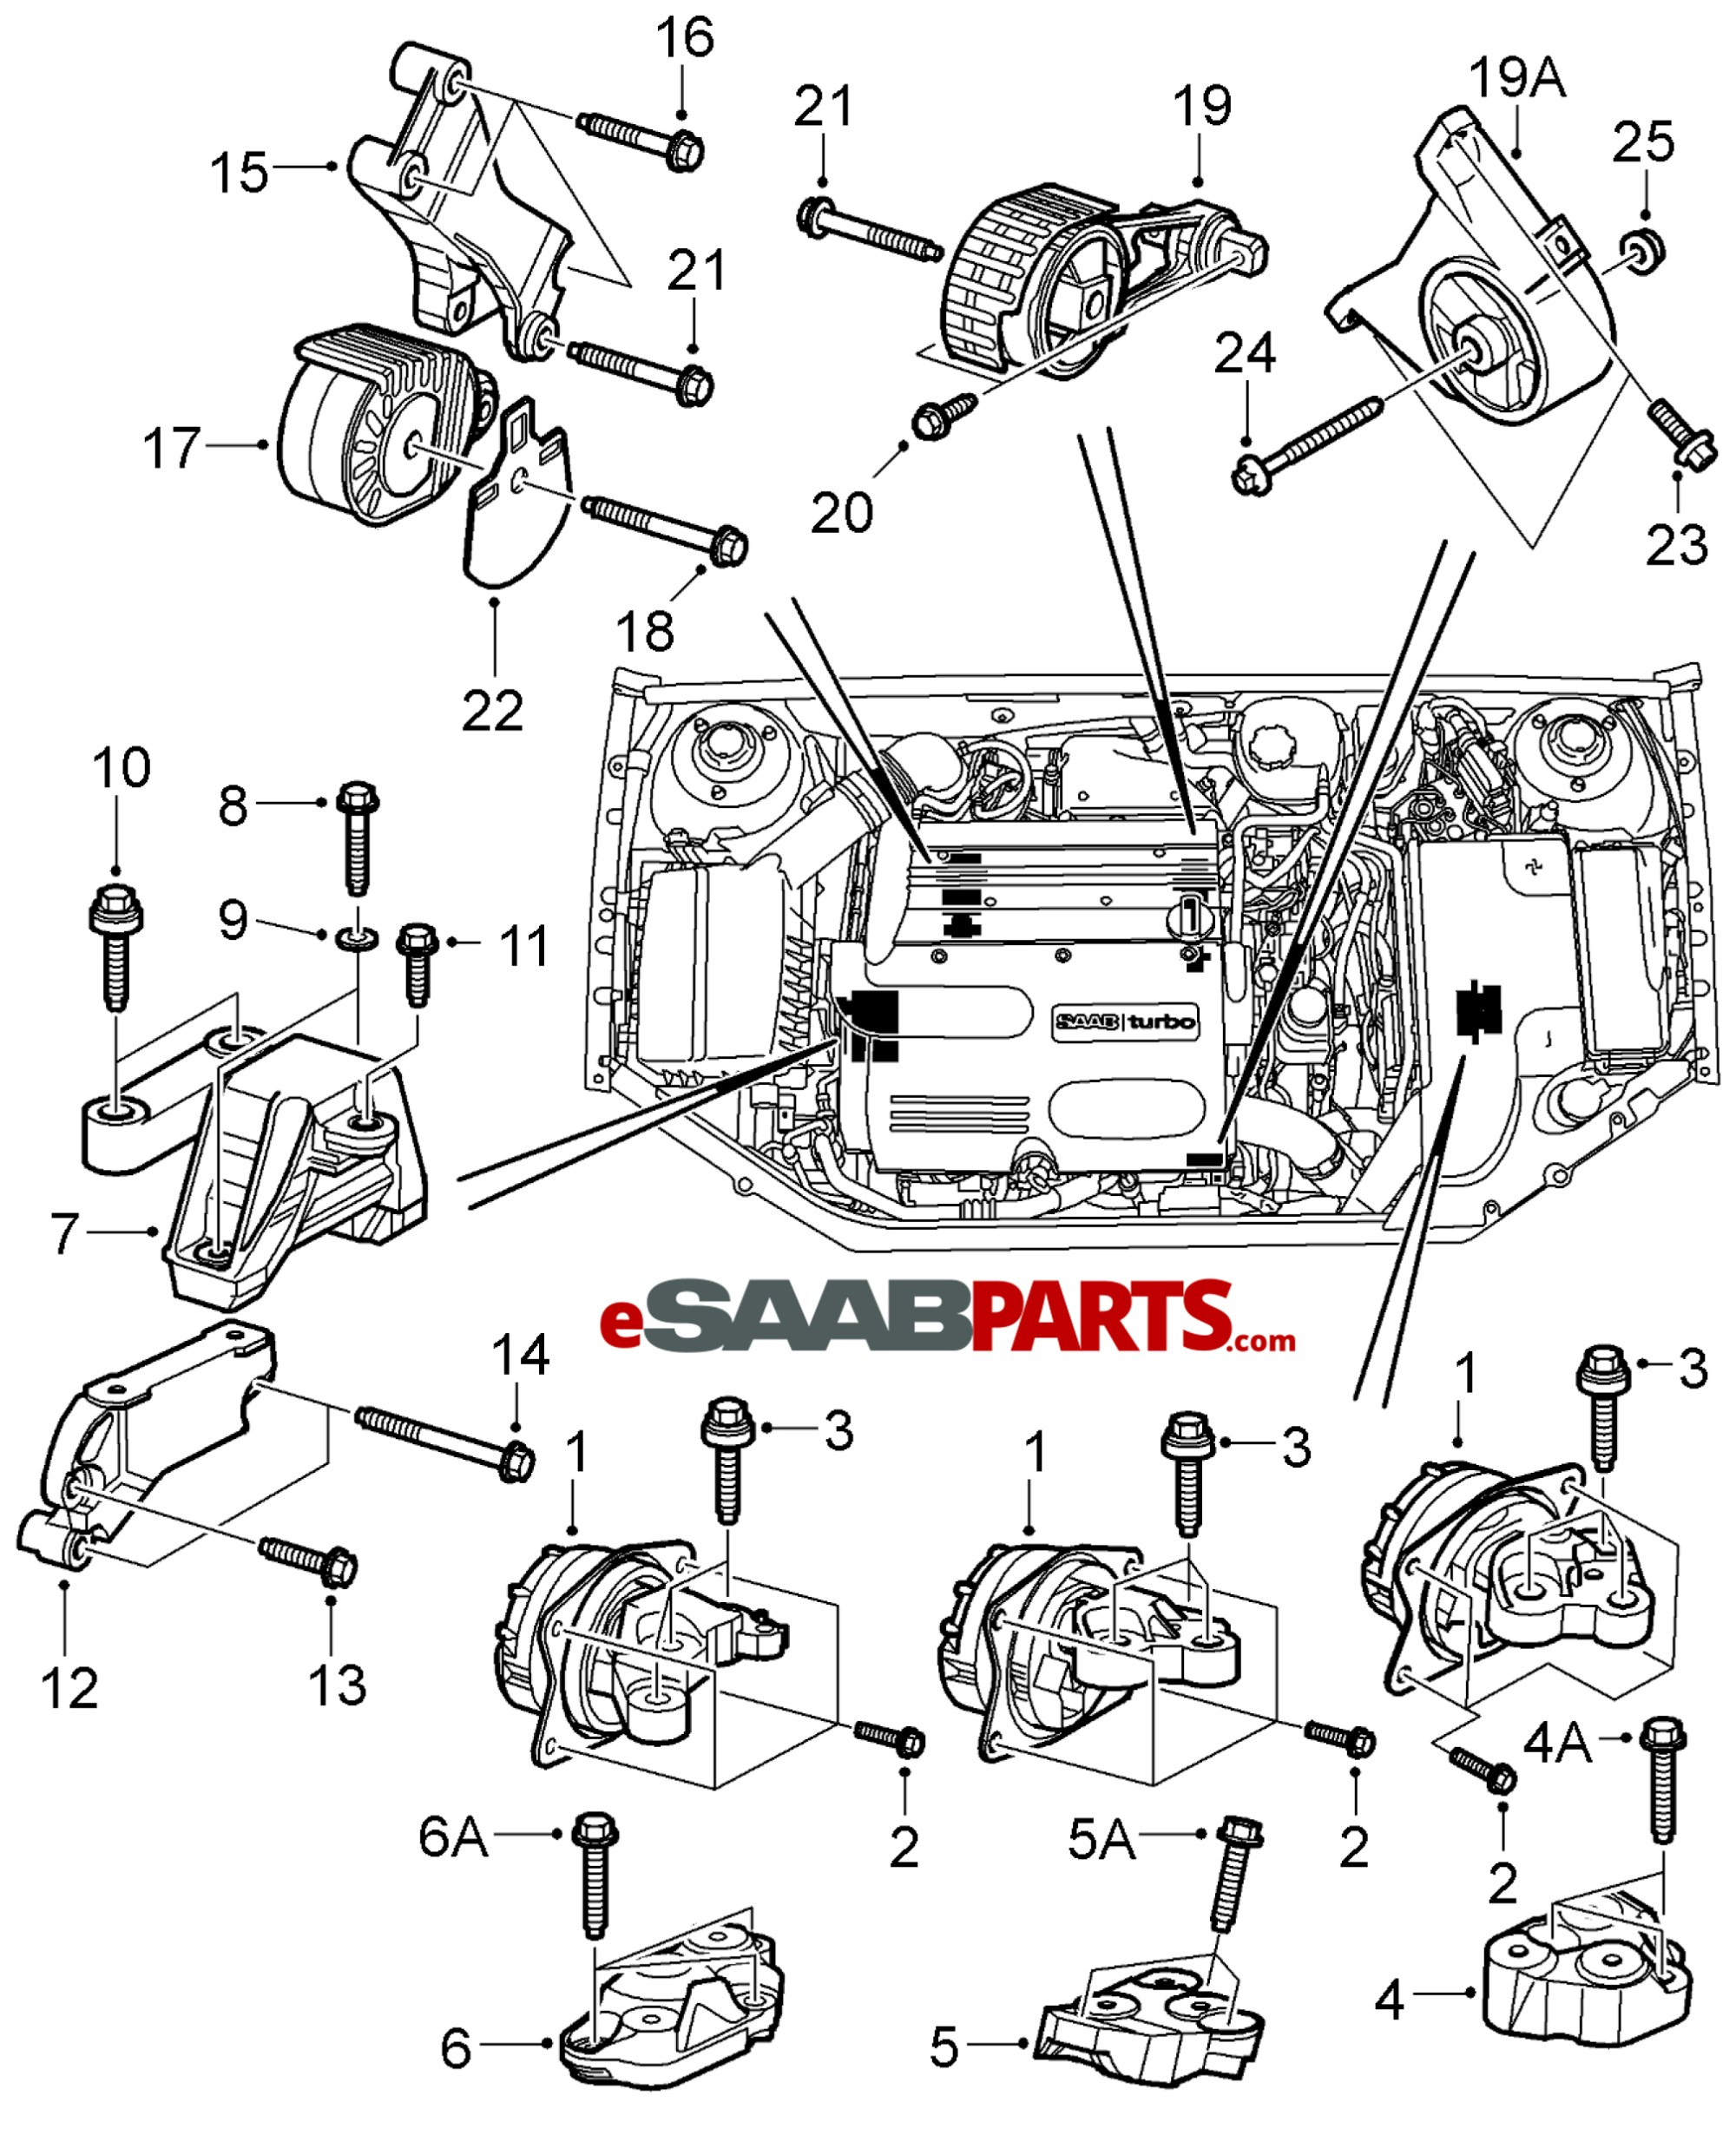 hight resolution of esaabparts com saab 9 3 9440 engine parts engine mounts engine transmission mounts b207